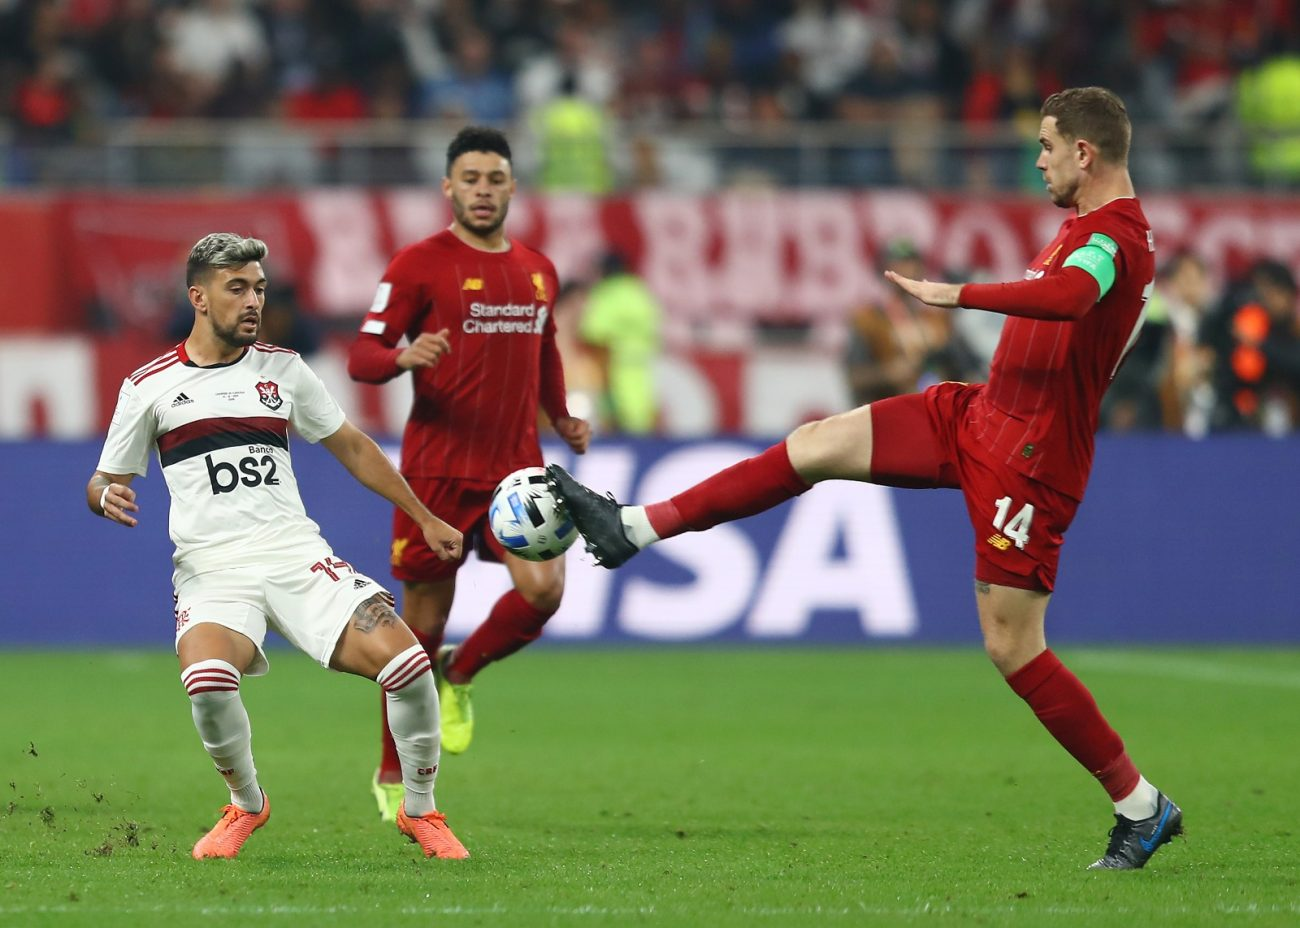 Liverpool 1-0 Flamengo – As it happened & reaction